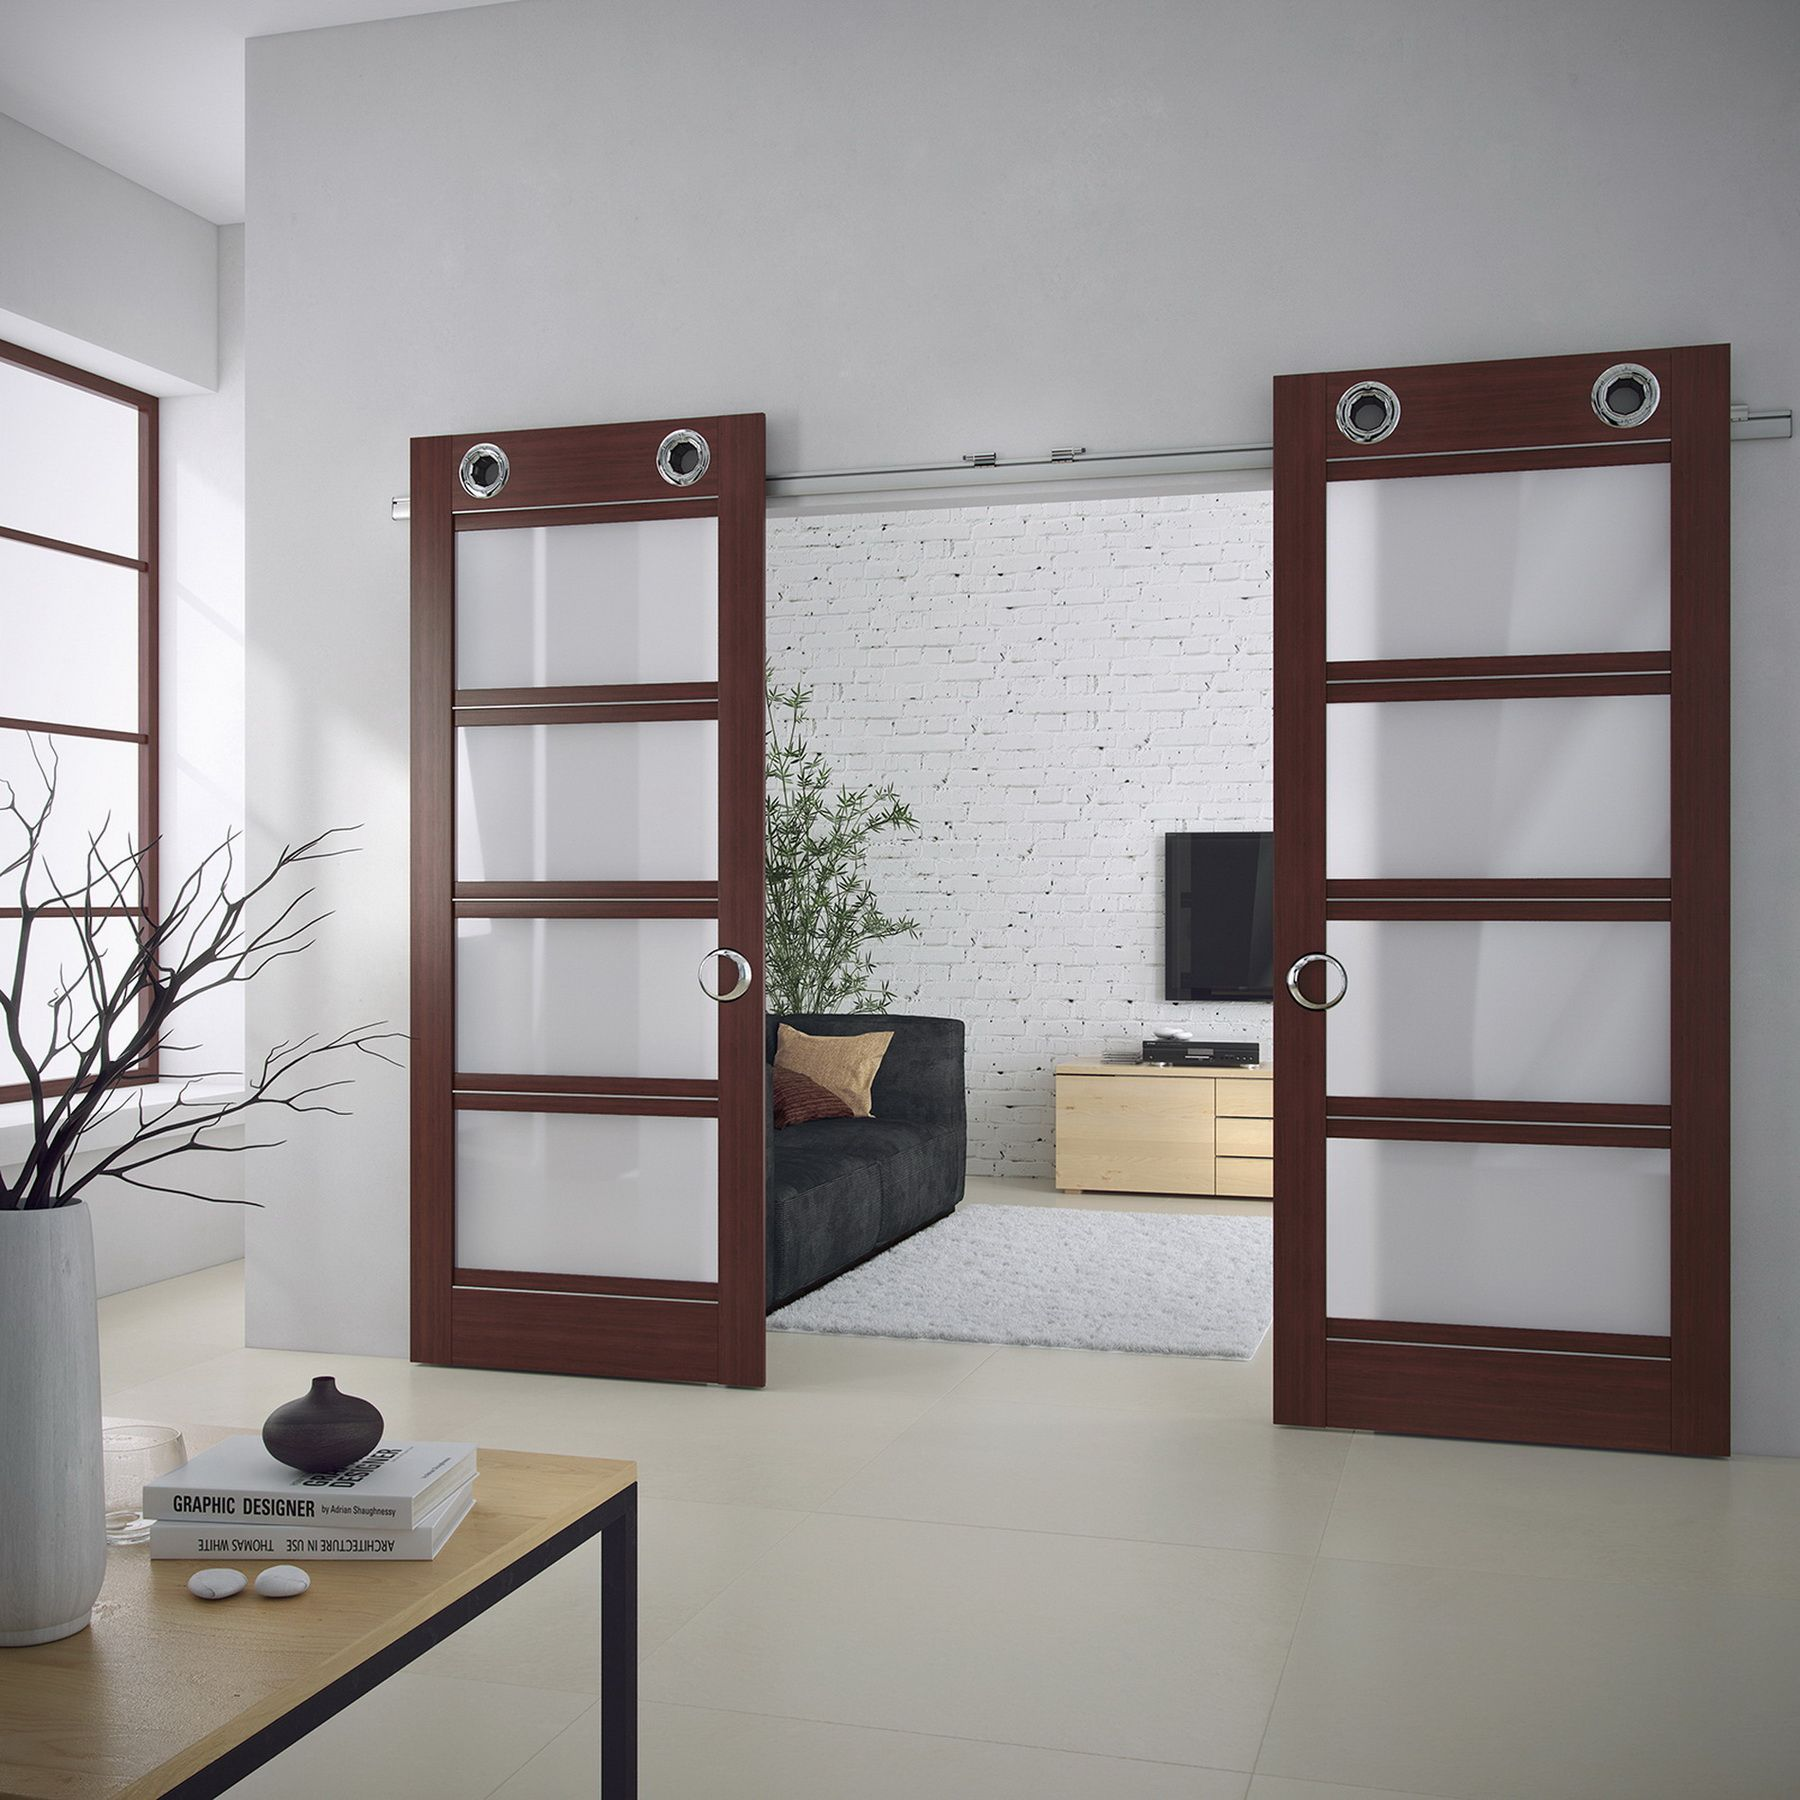 Gorgeous Double Door Sliding Panels with glass in Mahogany Finish